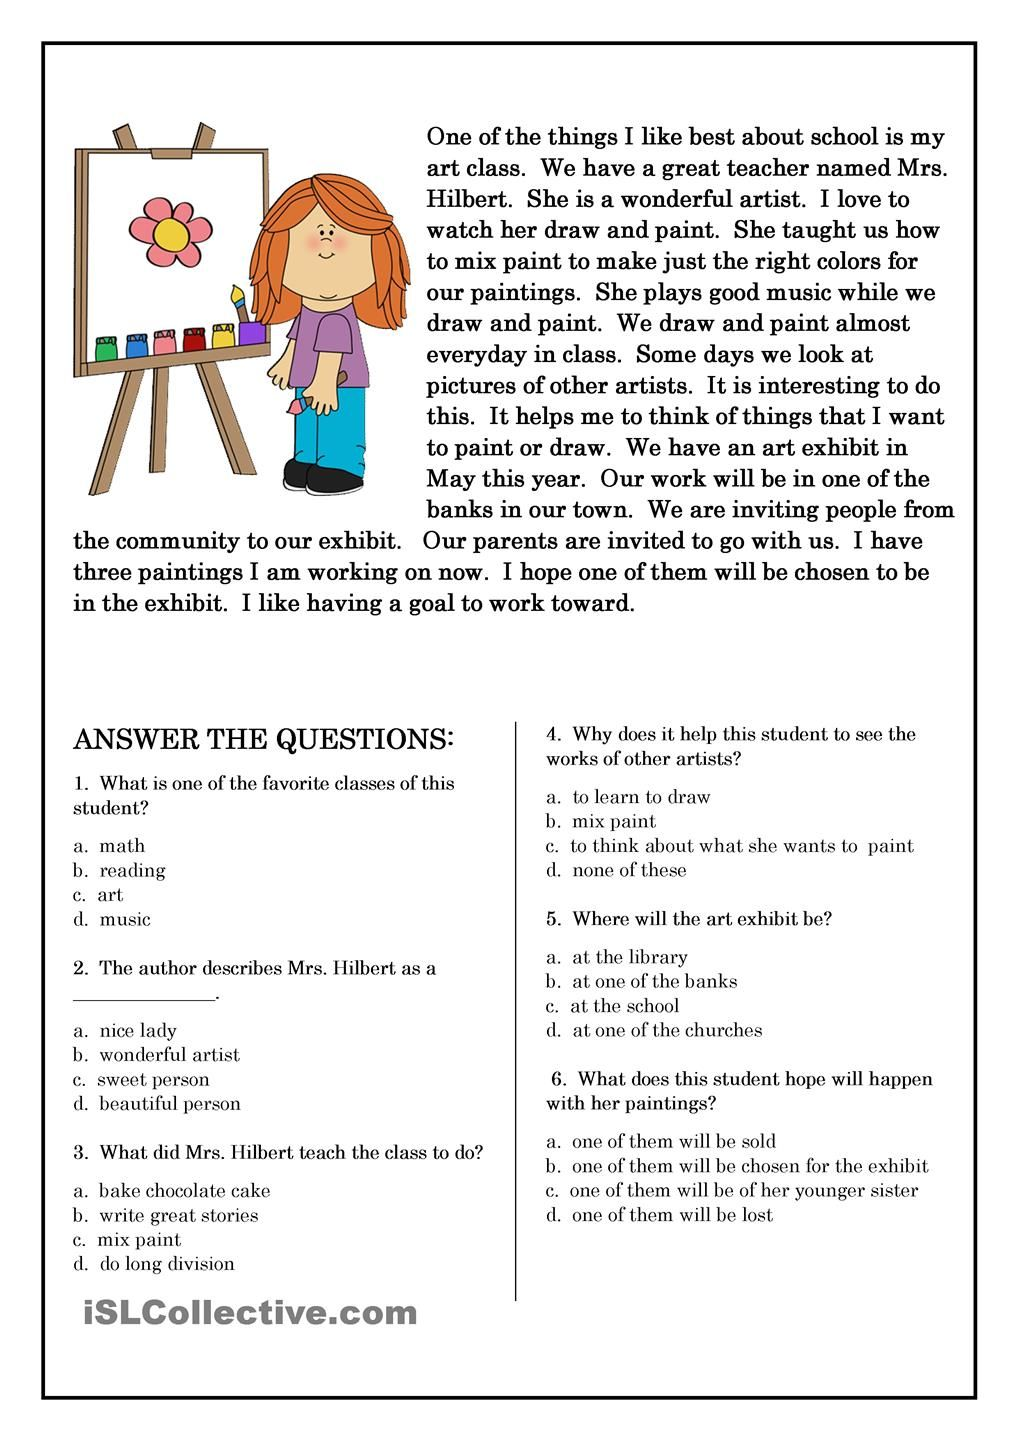 math worksheet : 1000 images about reading prehension on pinterest  : Reading Comprehension Worksheets Multiple Choice